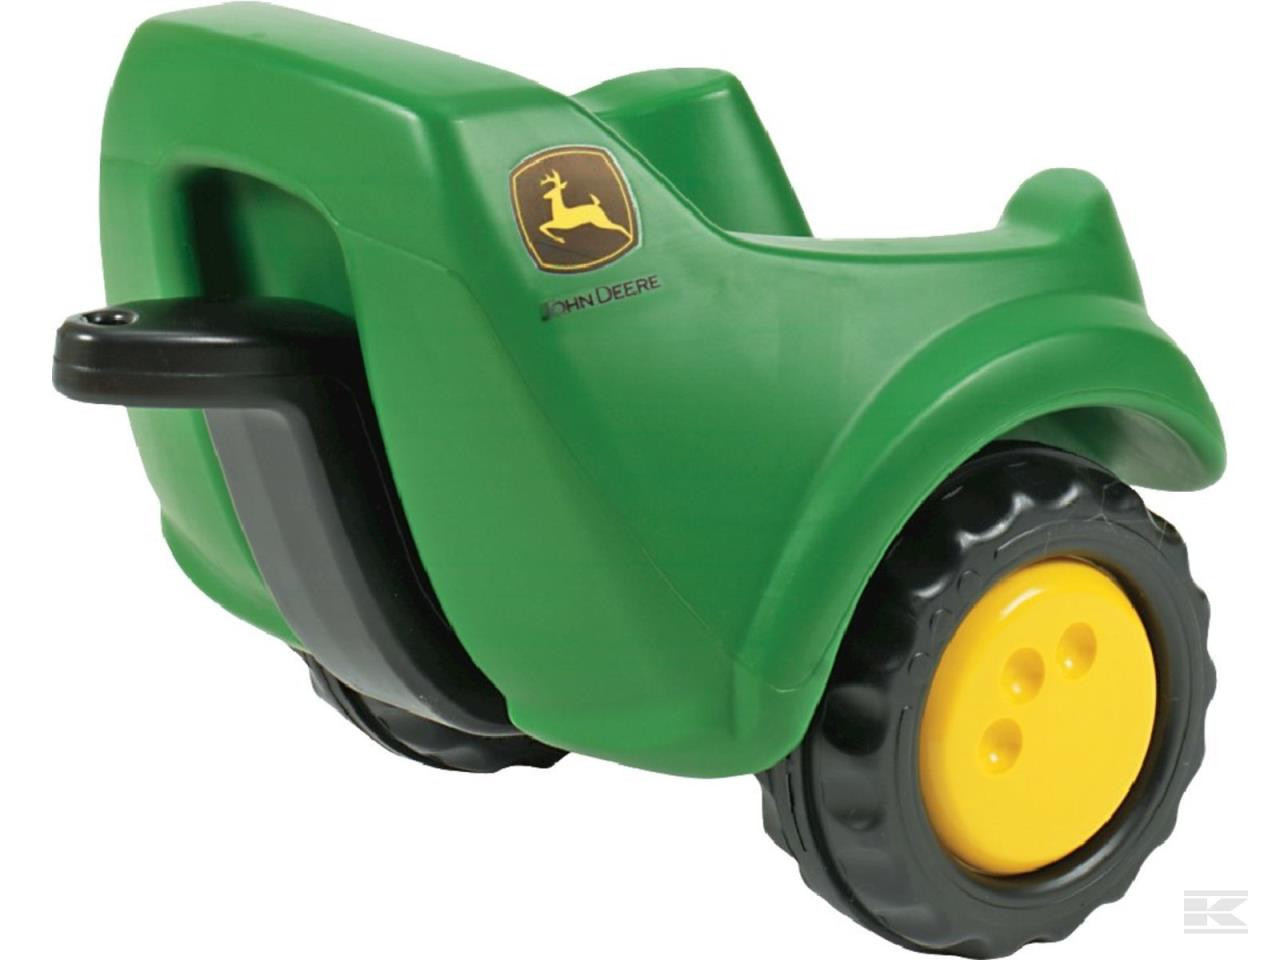 John Deere trailer green